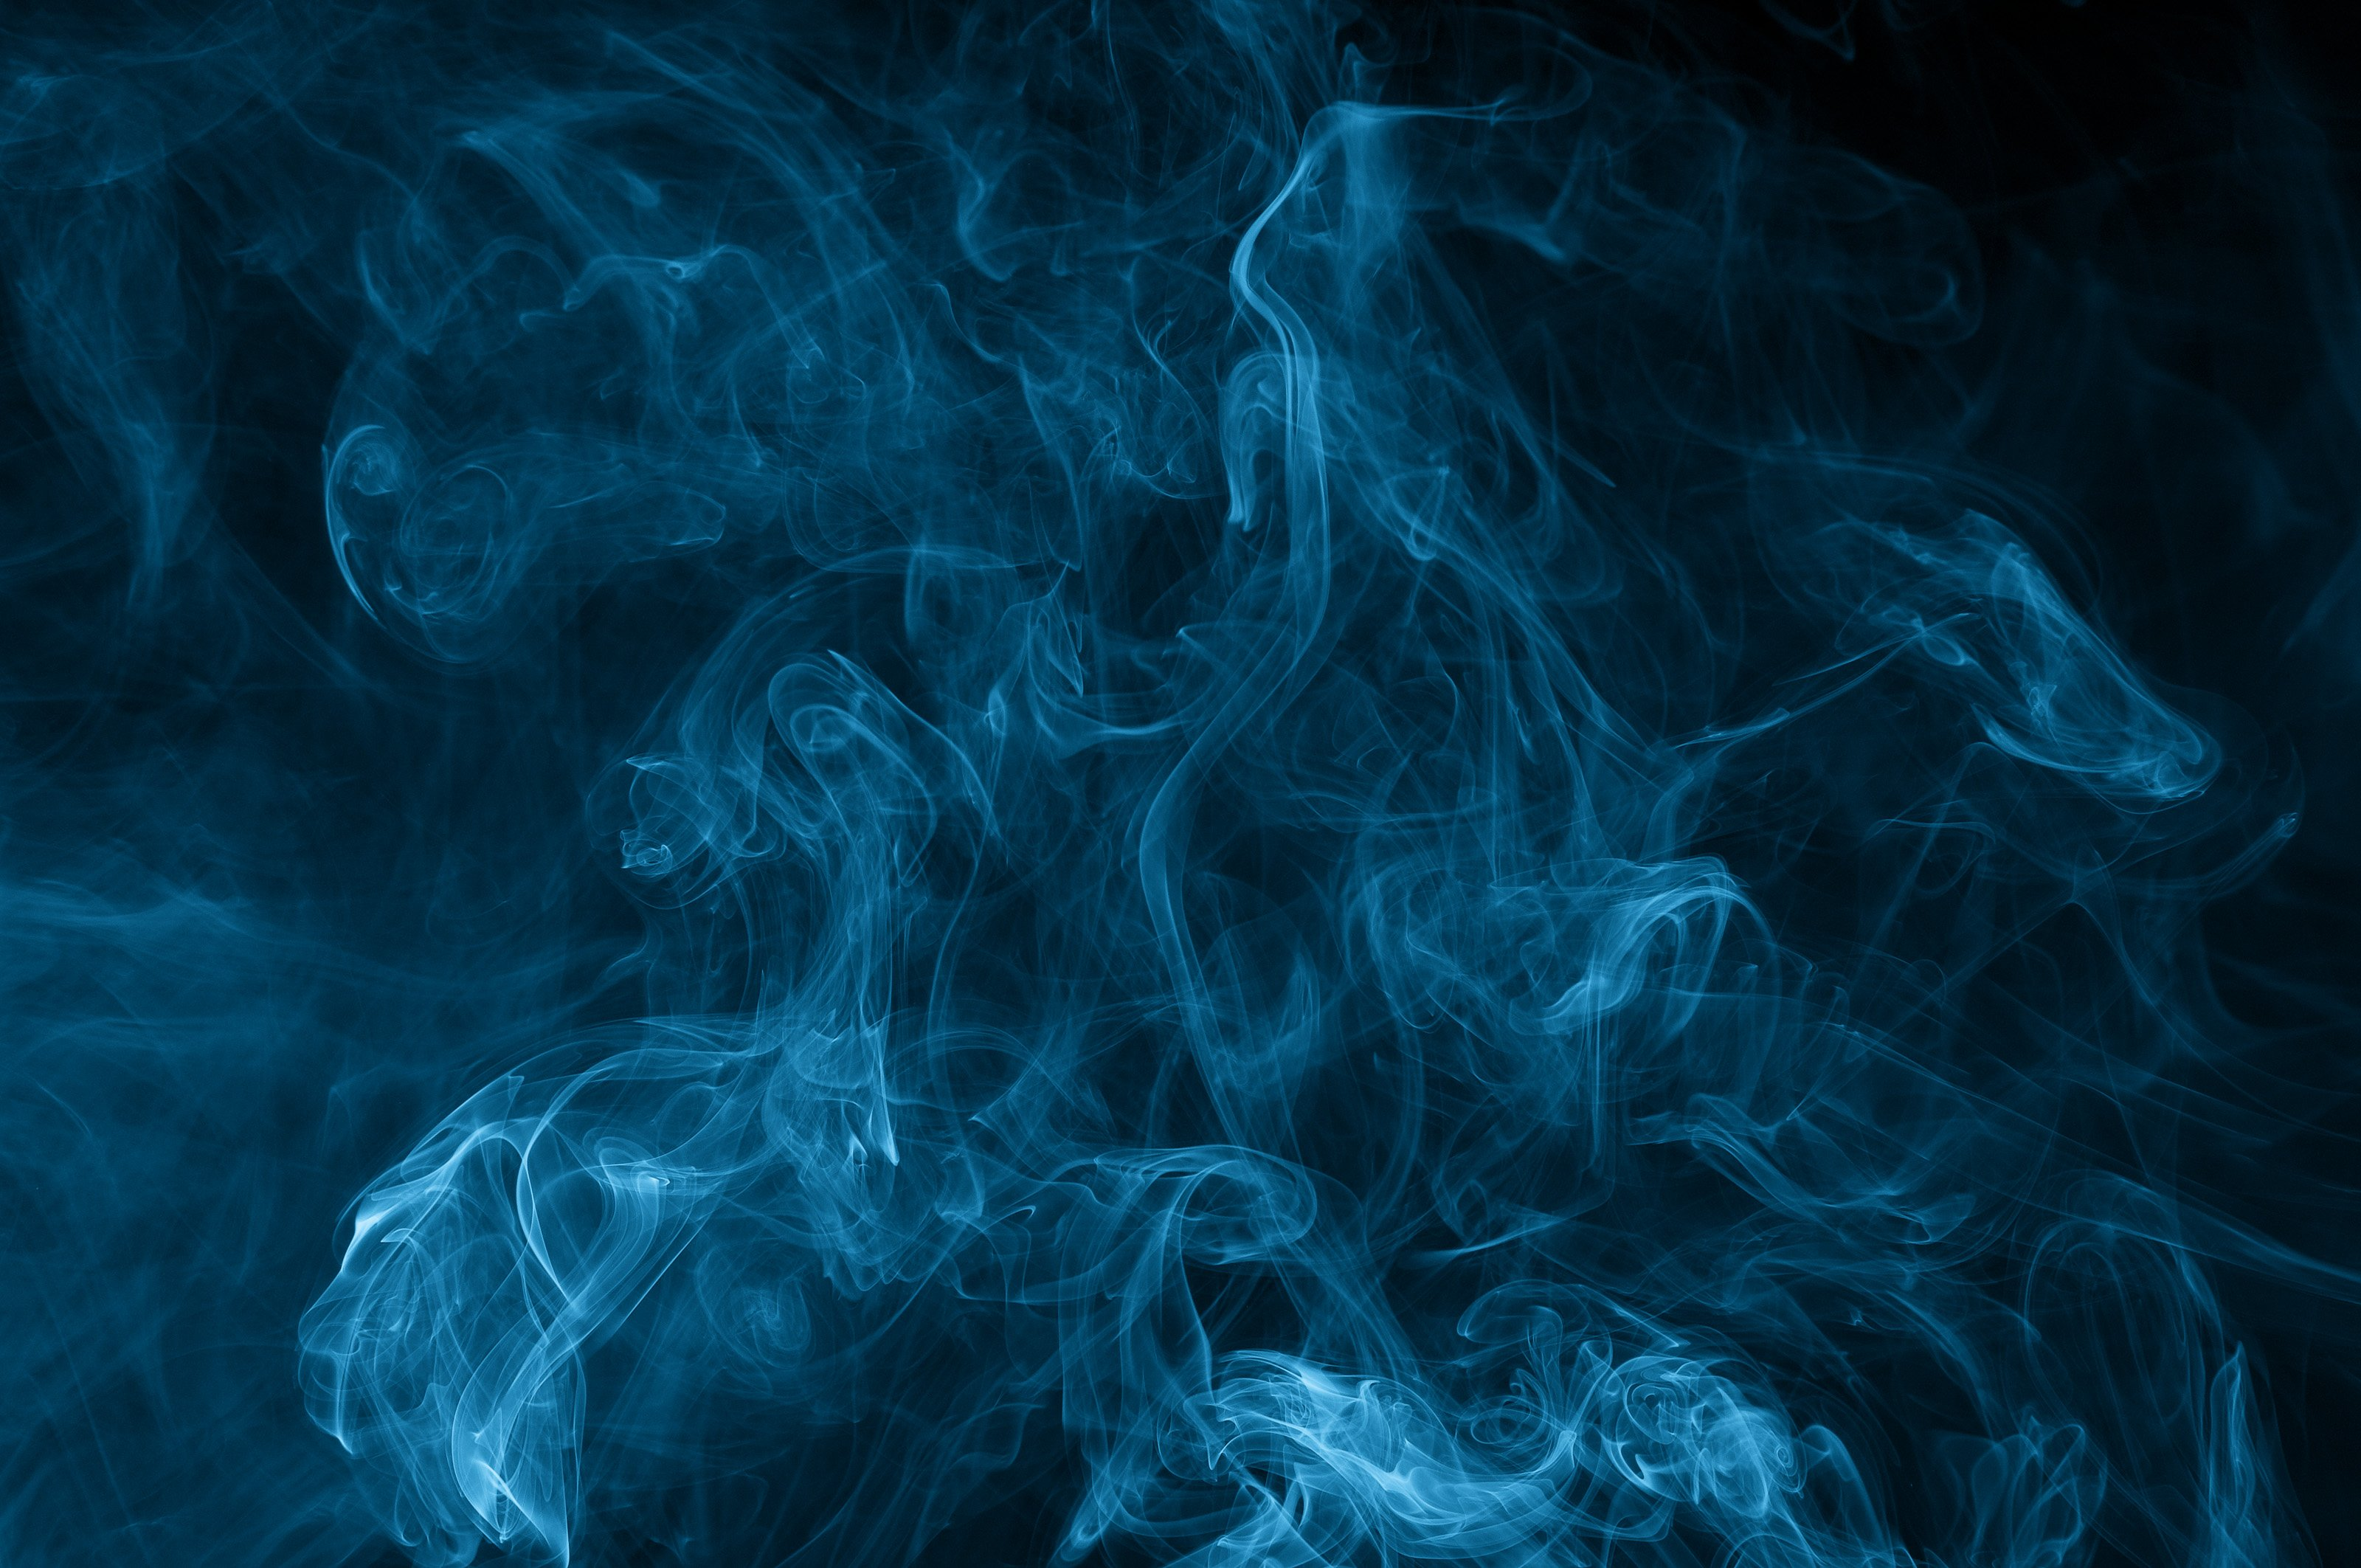 Blue Smoke Wallpaper 3200x2125